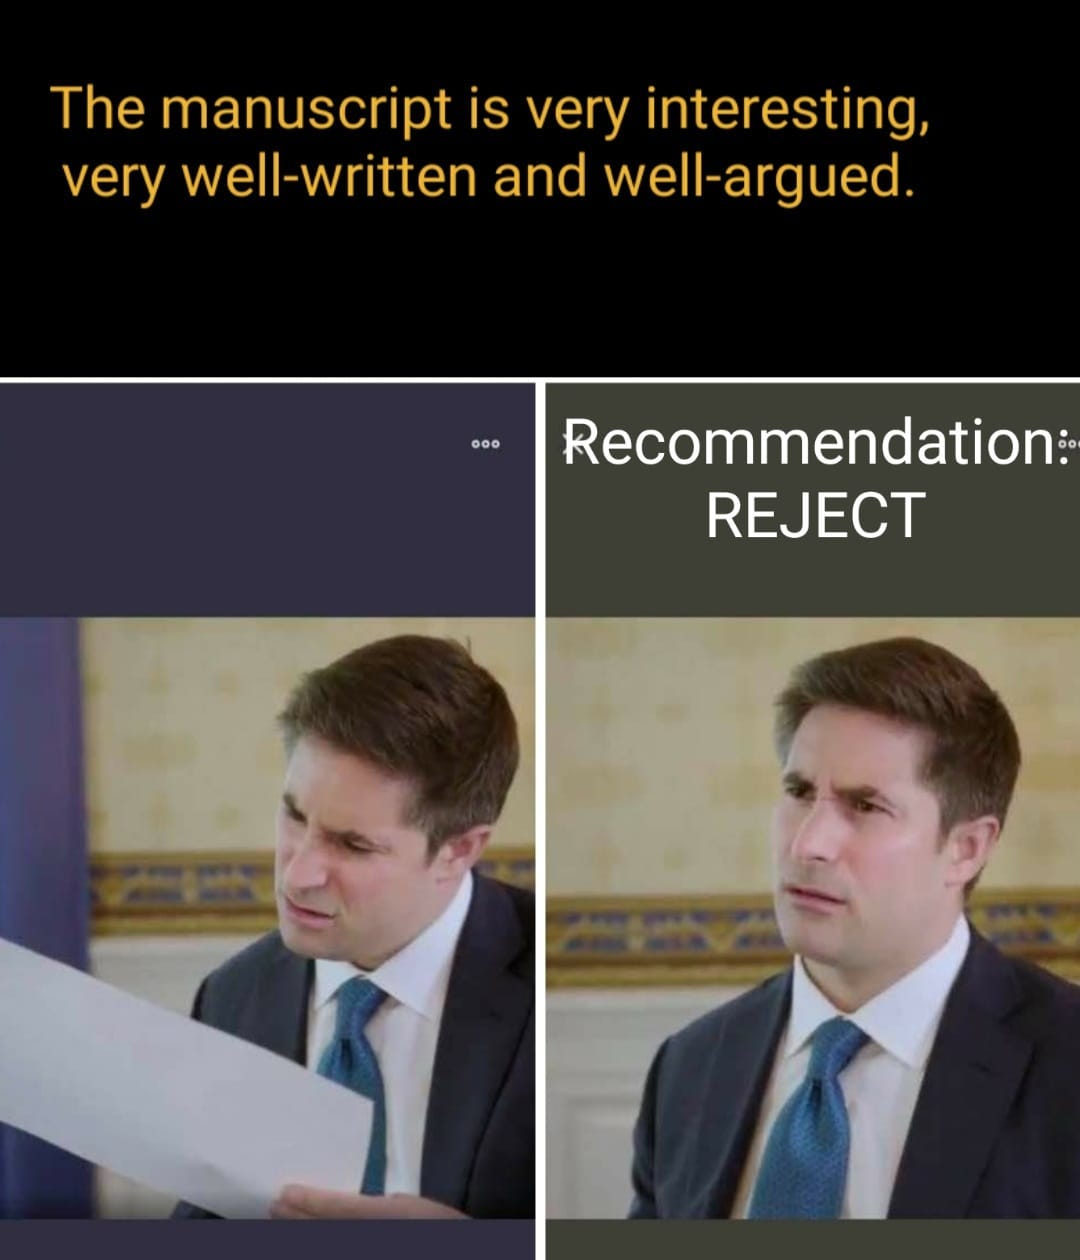 Image may contain: 2 people, text that says 'The manuscript is very interesting, very well-written and well-argued. Recommendation: REJECT'